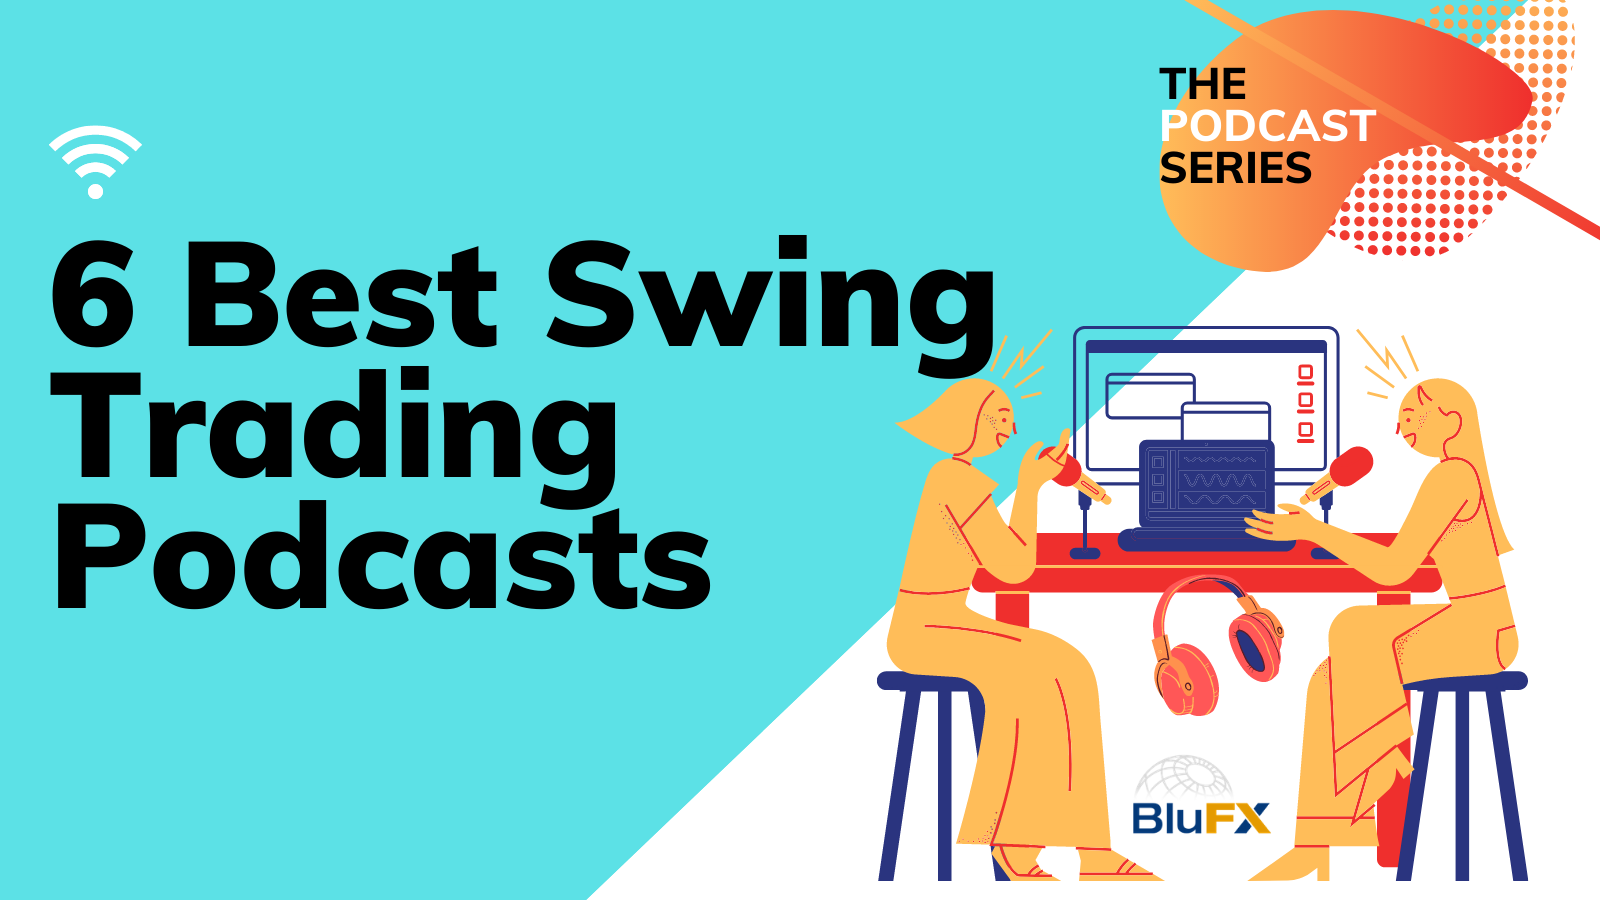 6 Best Swing Trading Podcasts